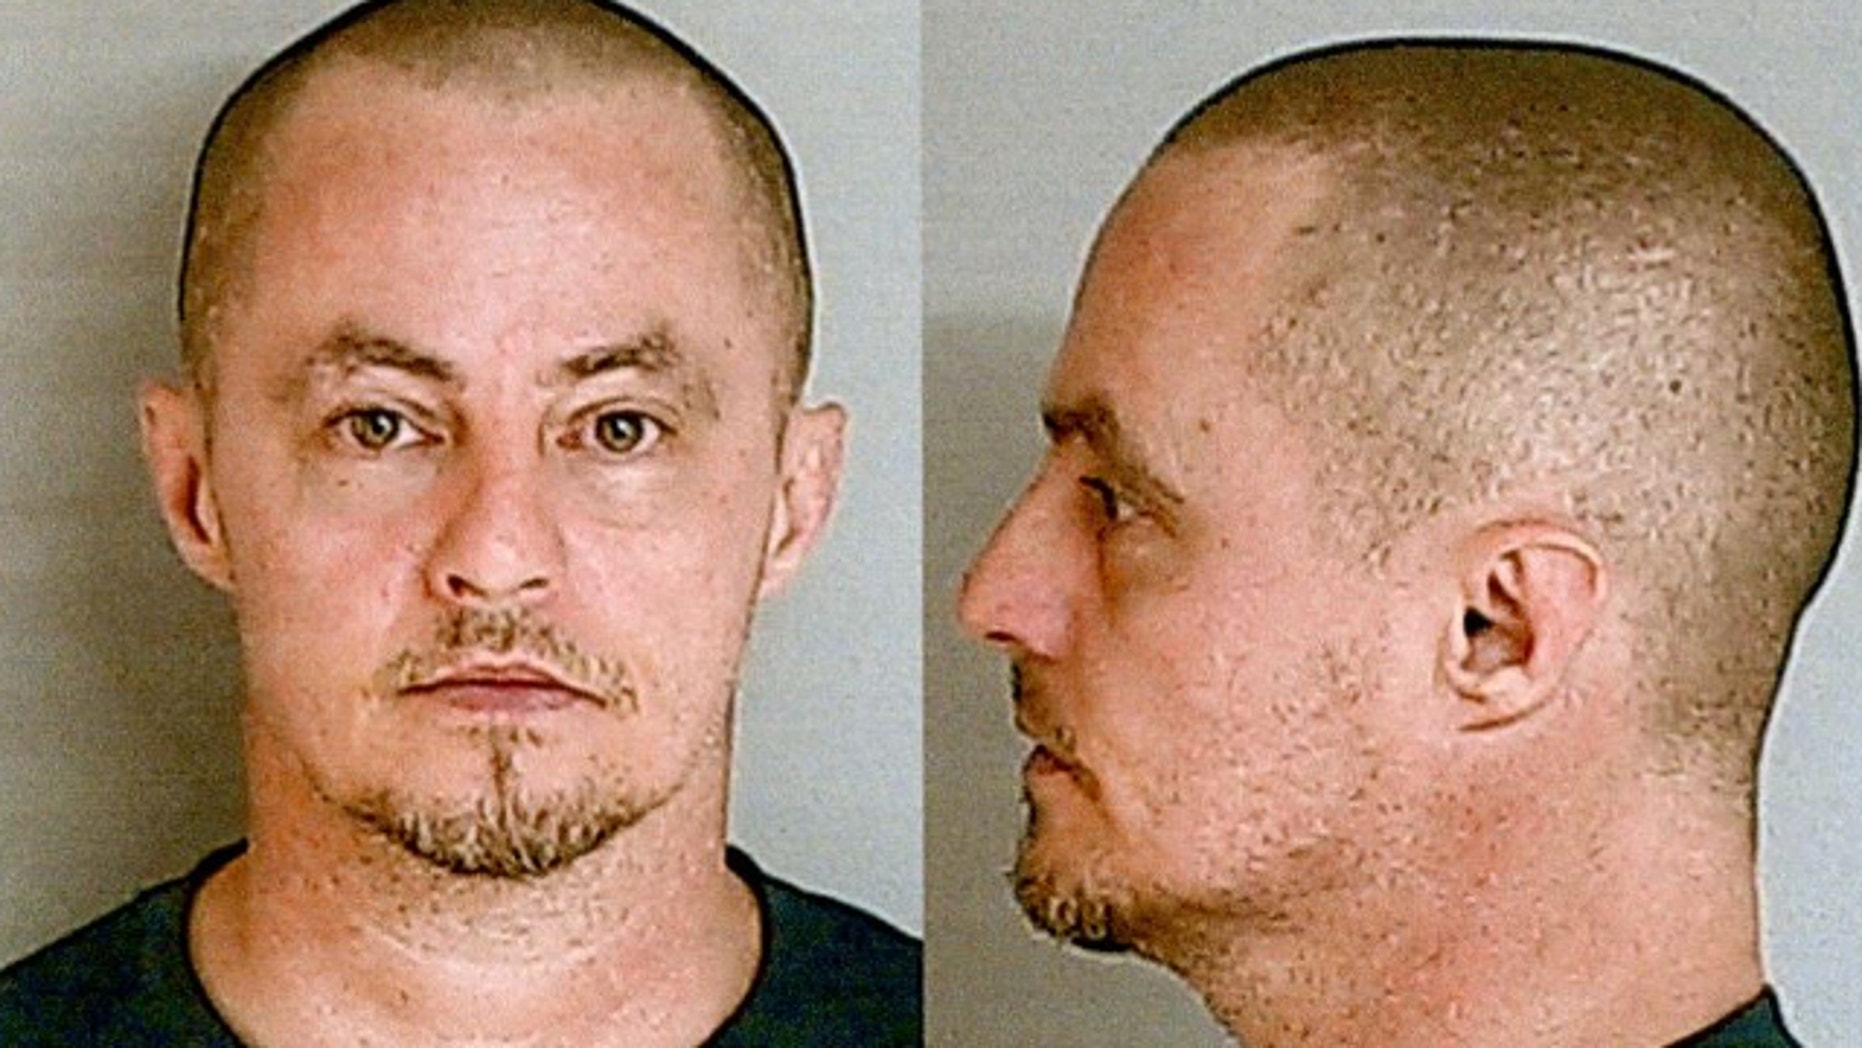 UNDATED: Raymond McCann, 46, was arraigned April 19 on the charge stemming from an investigation conducted by a state cold case team probing the killing of Jodi Parrack.